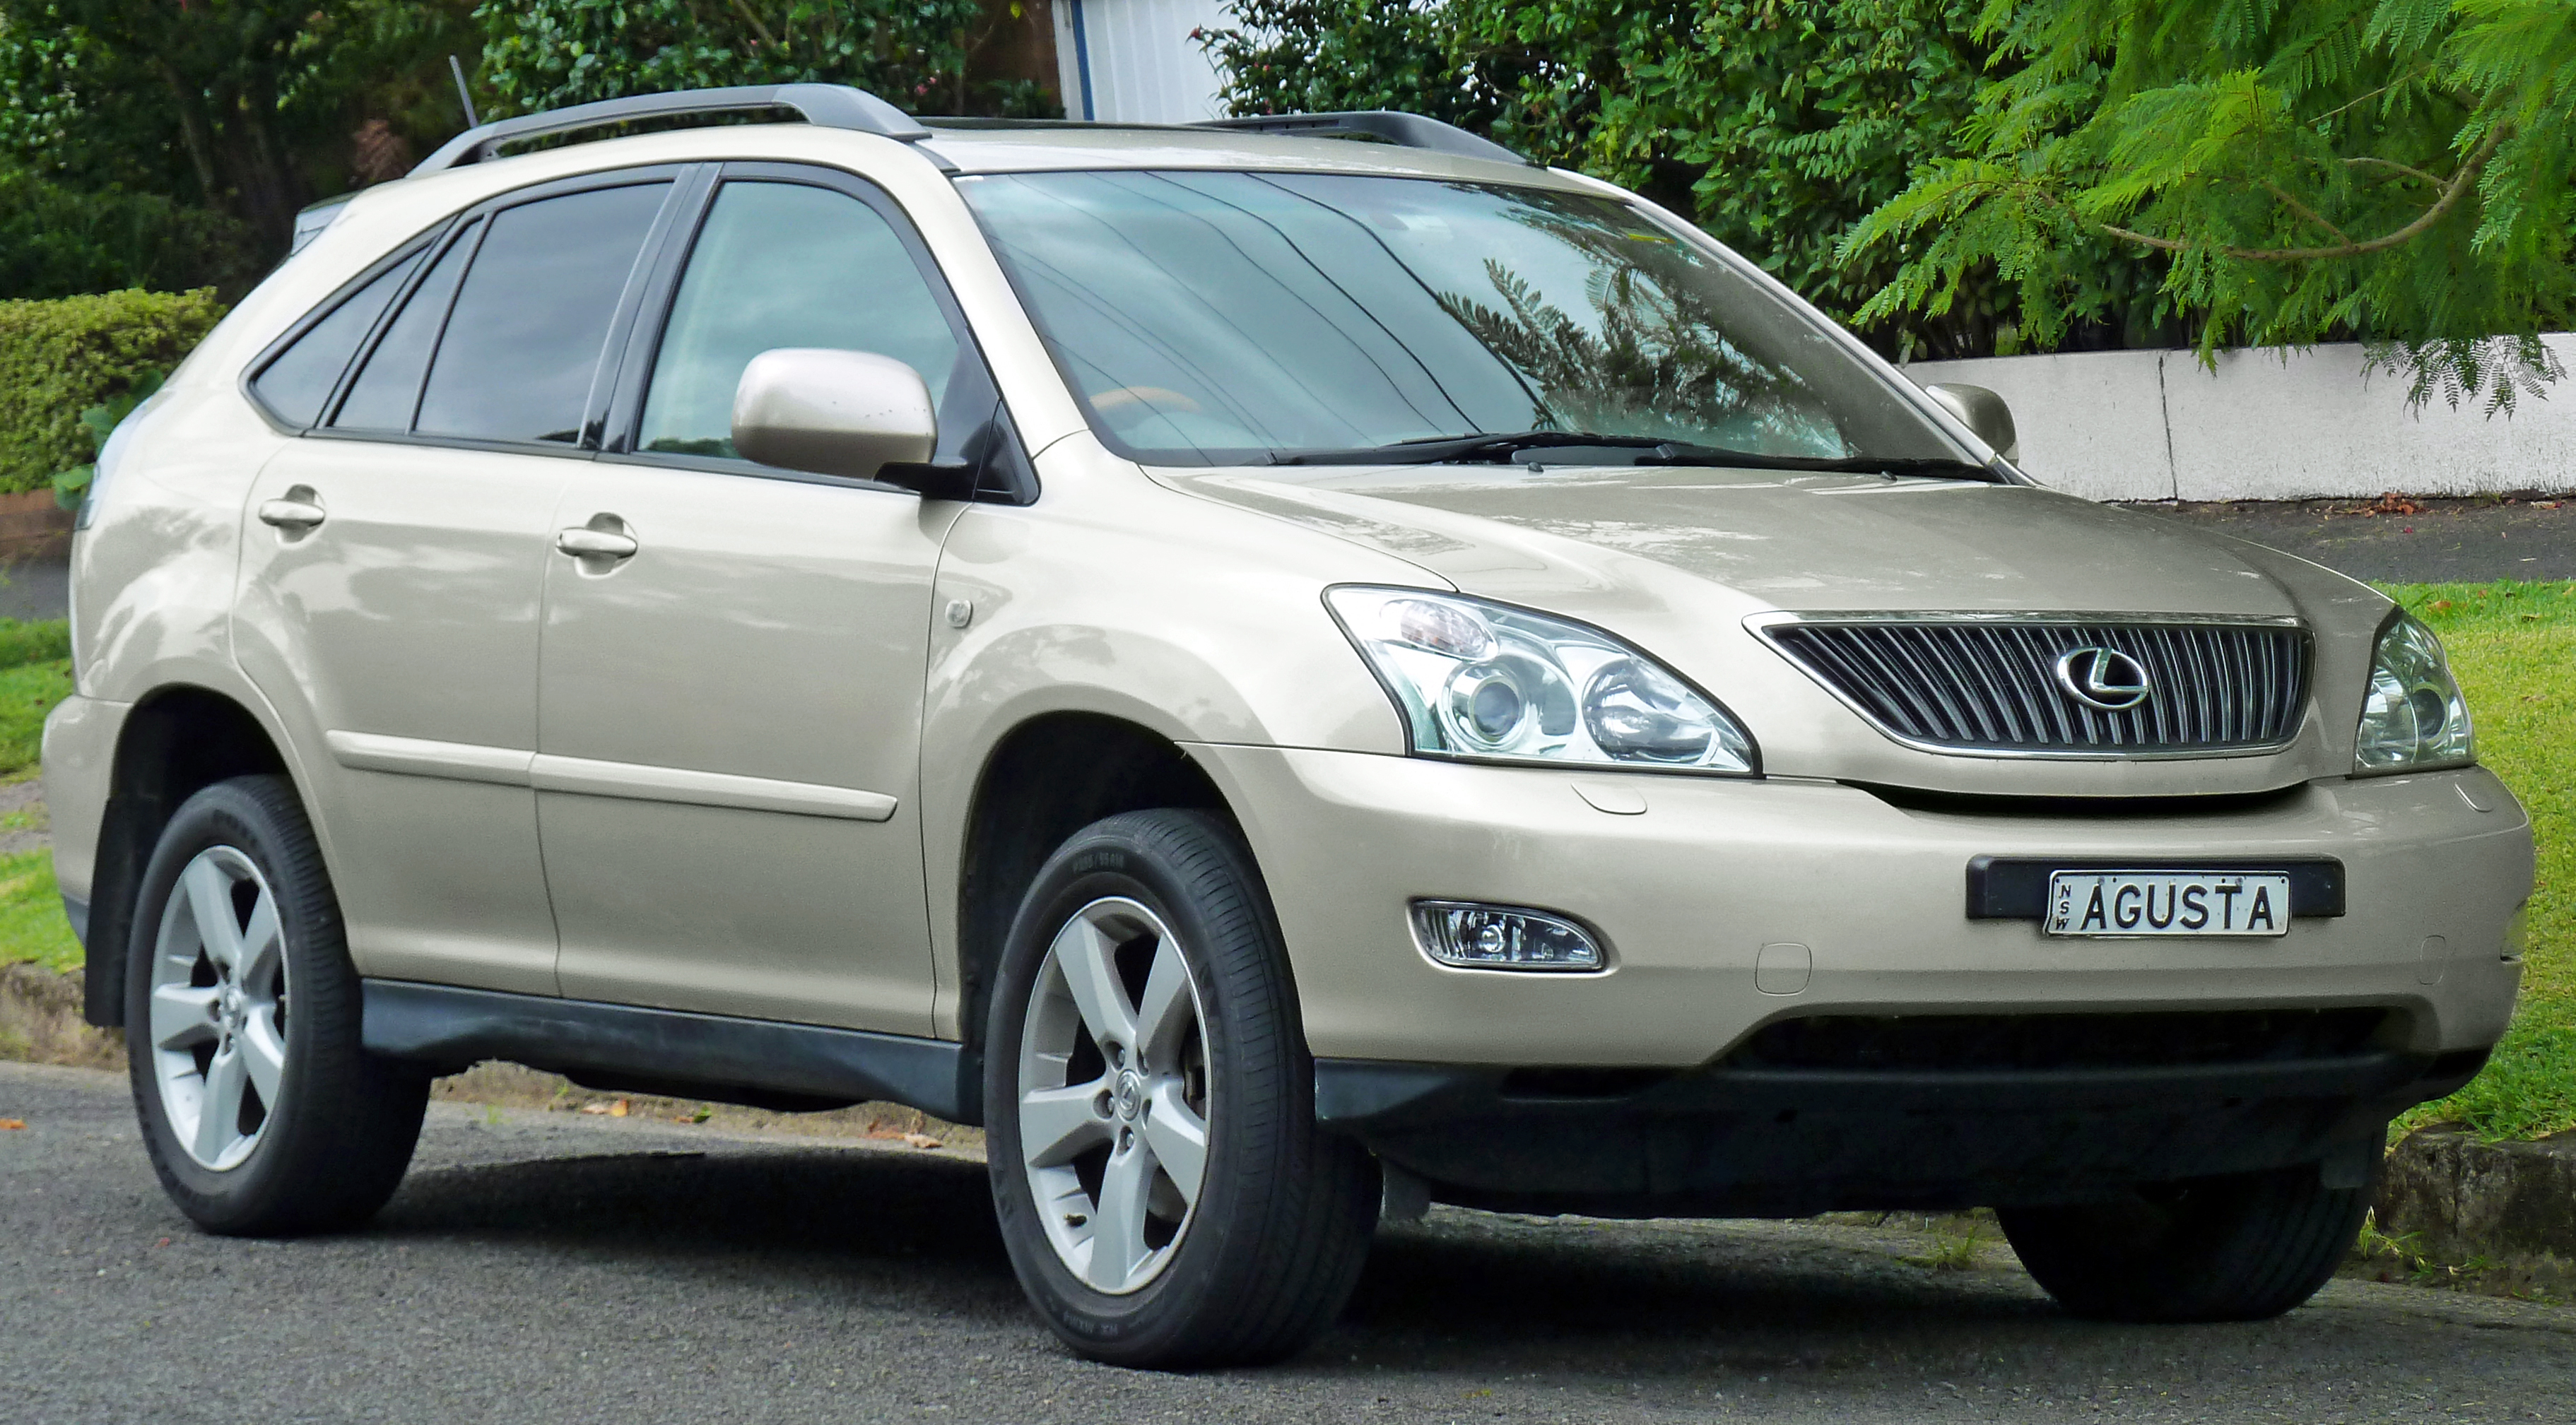 File2004 2005 lexus rx 330 mcu38r sports luxury wagon 2011 04 02 file2004 2005 lexus rx 330 mcu38r sports luxury wagon 2011 sciox Gallery